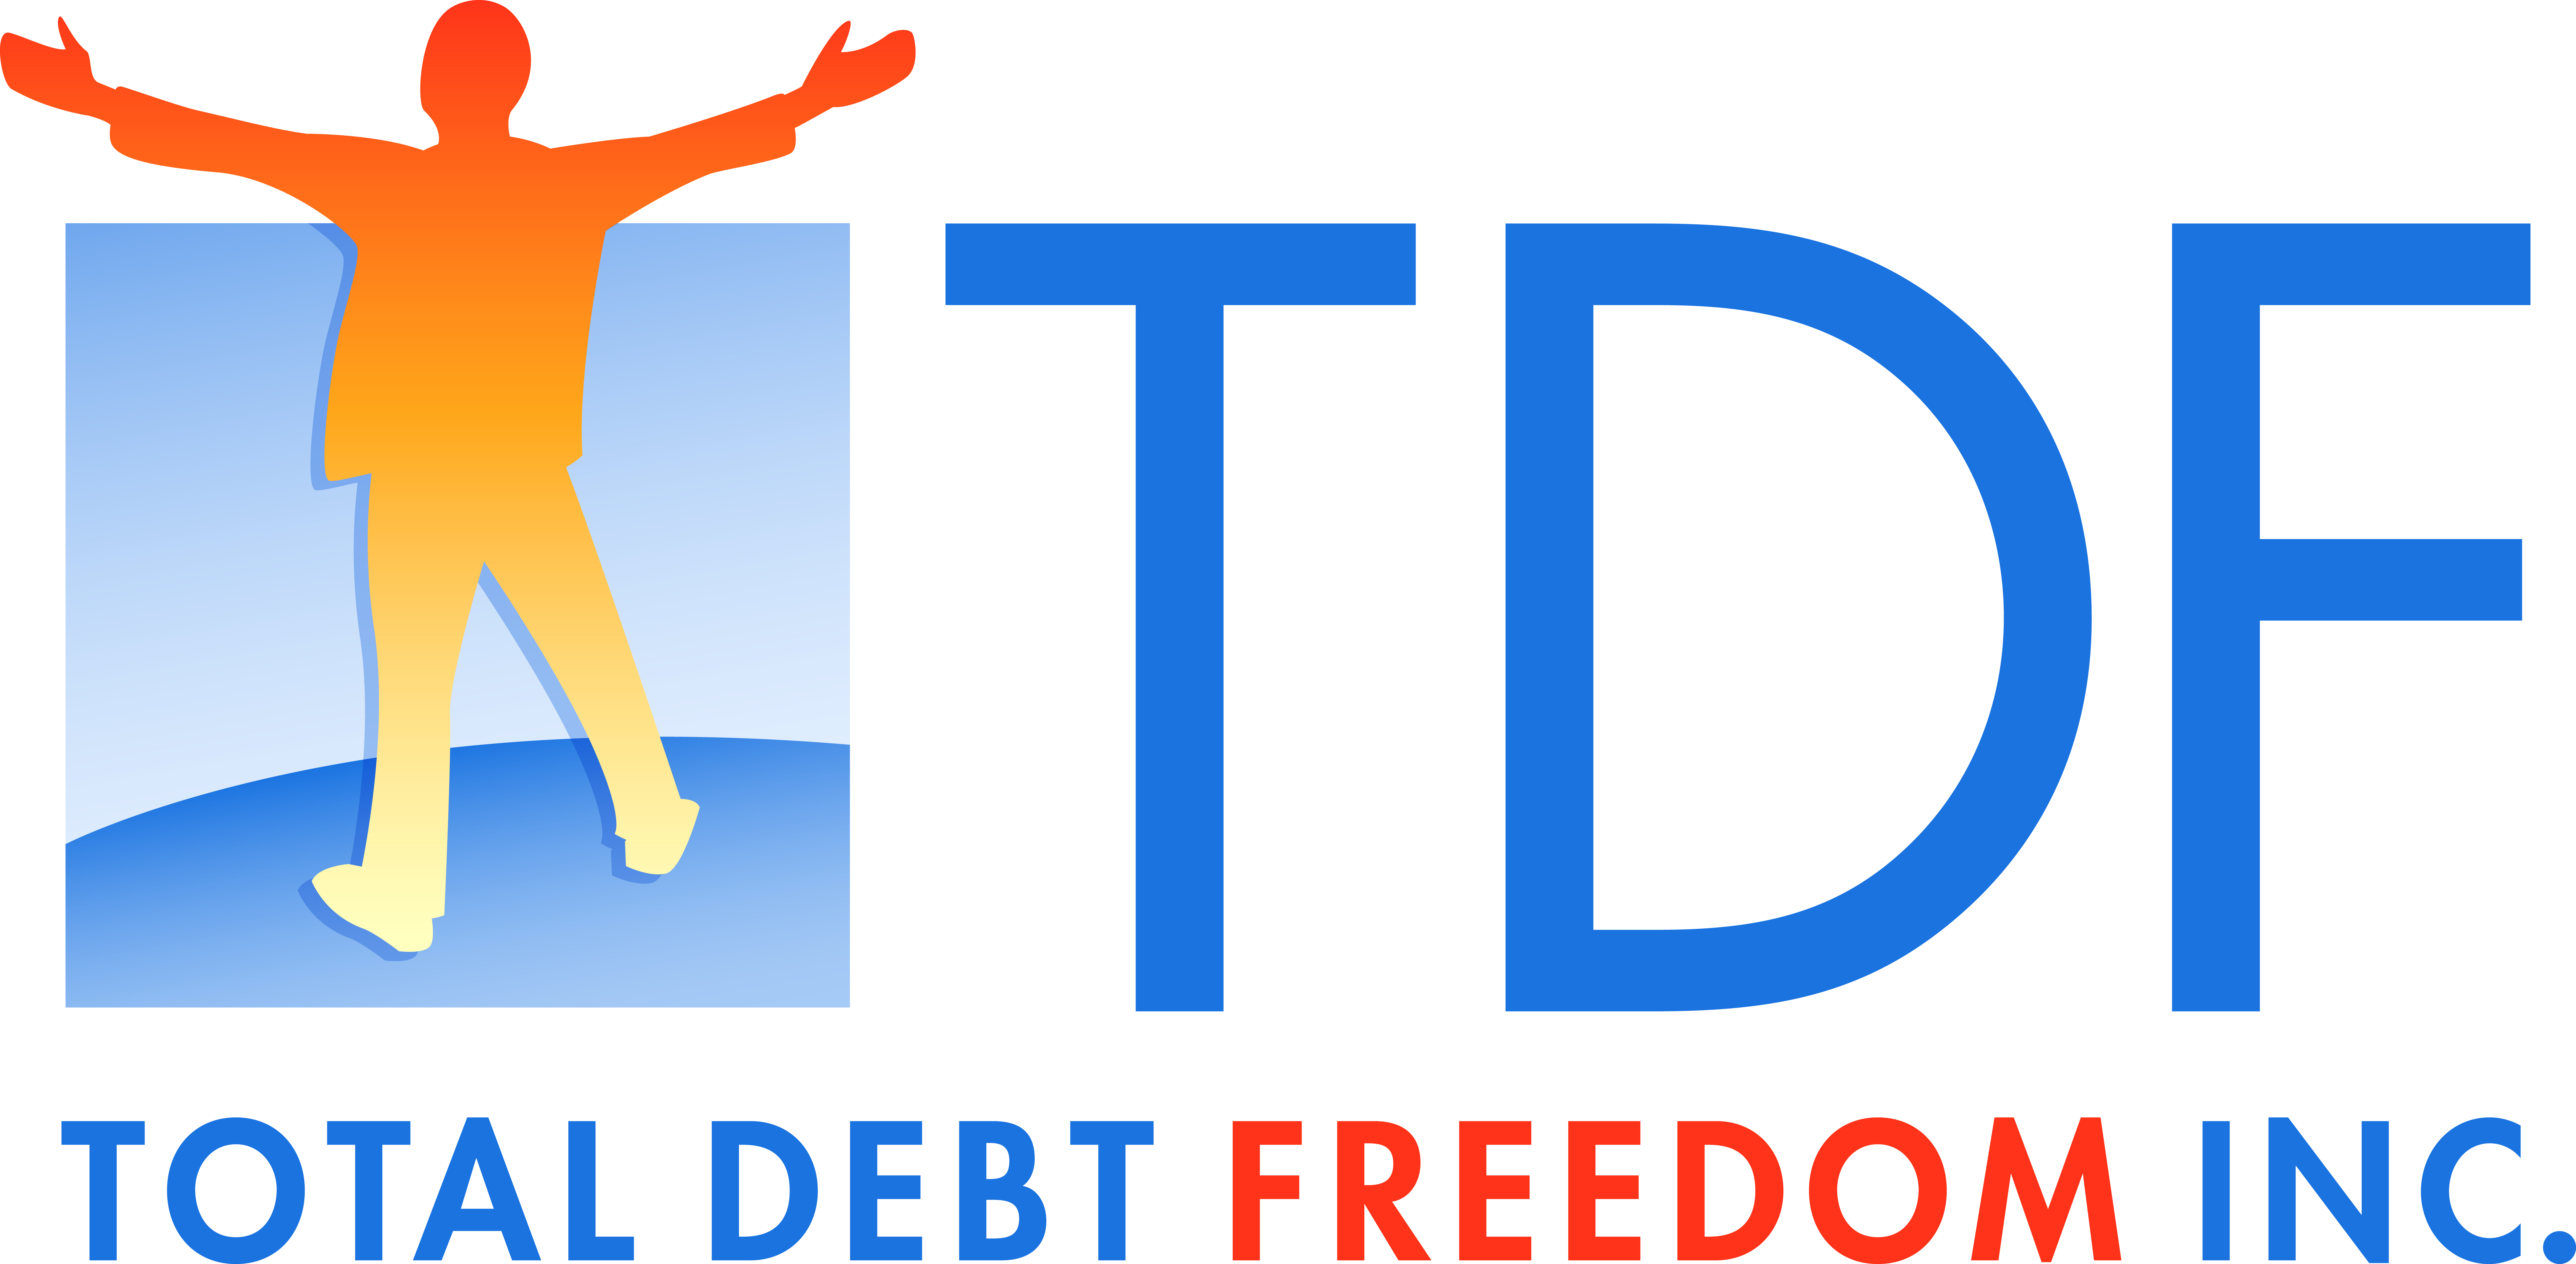 Total Debt Freedom